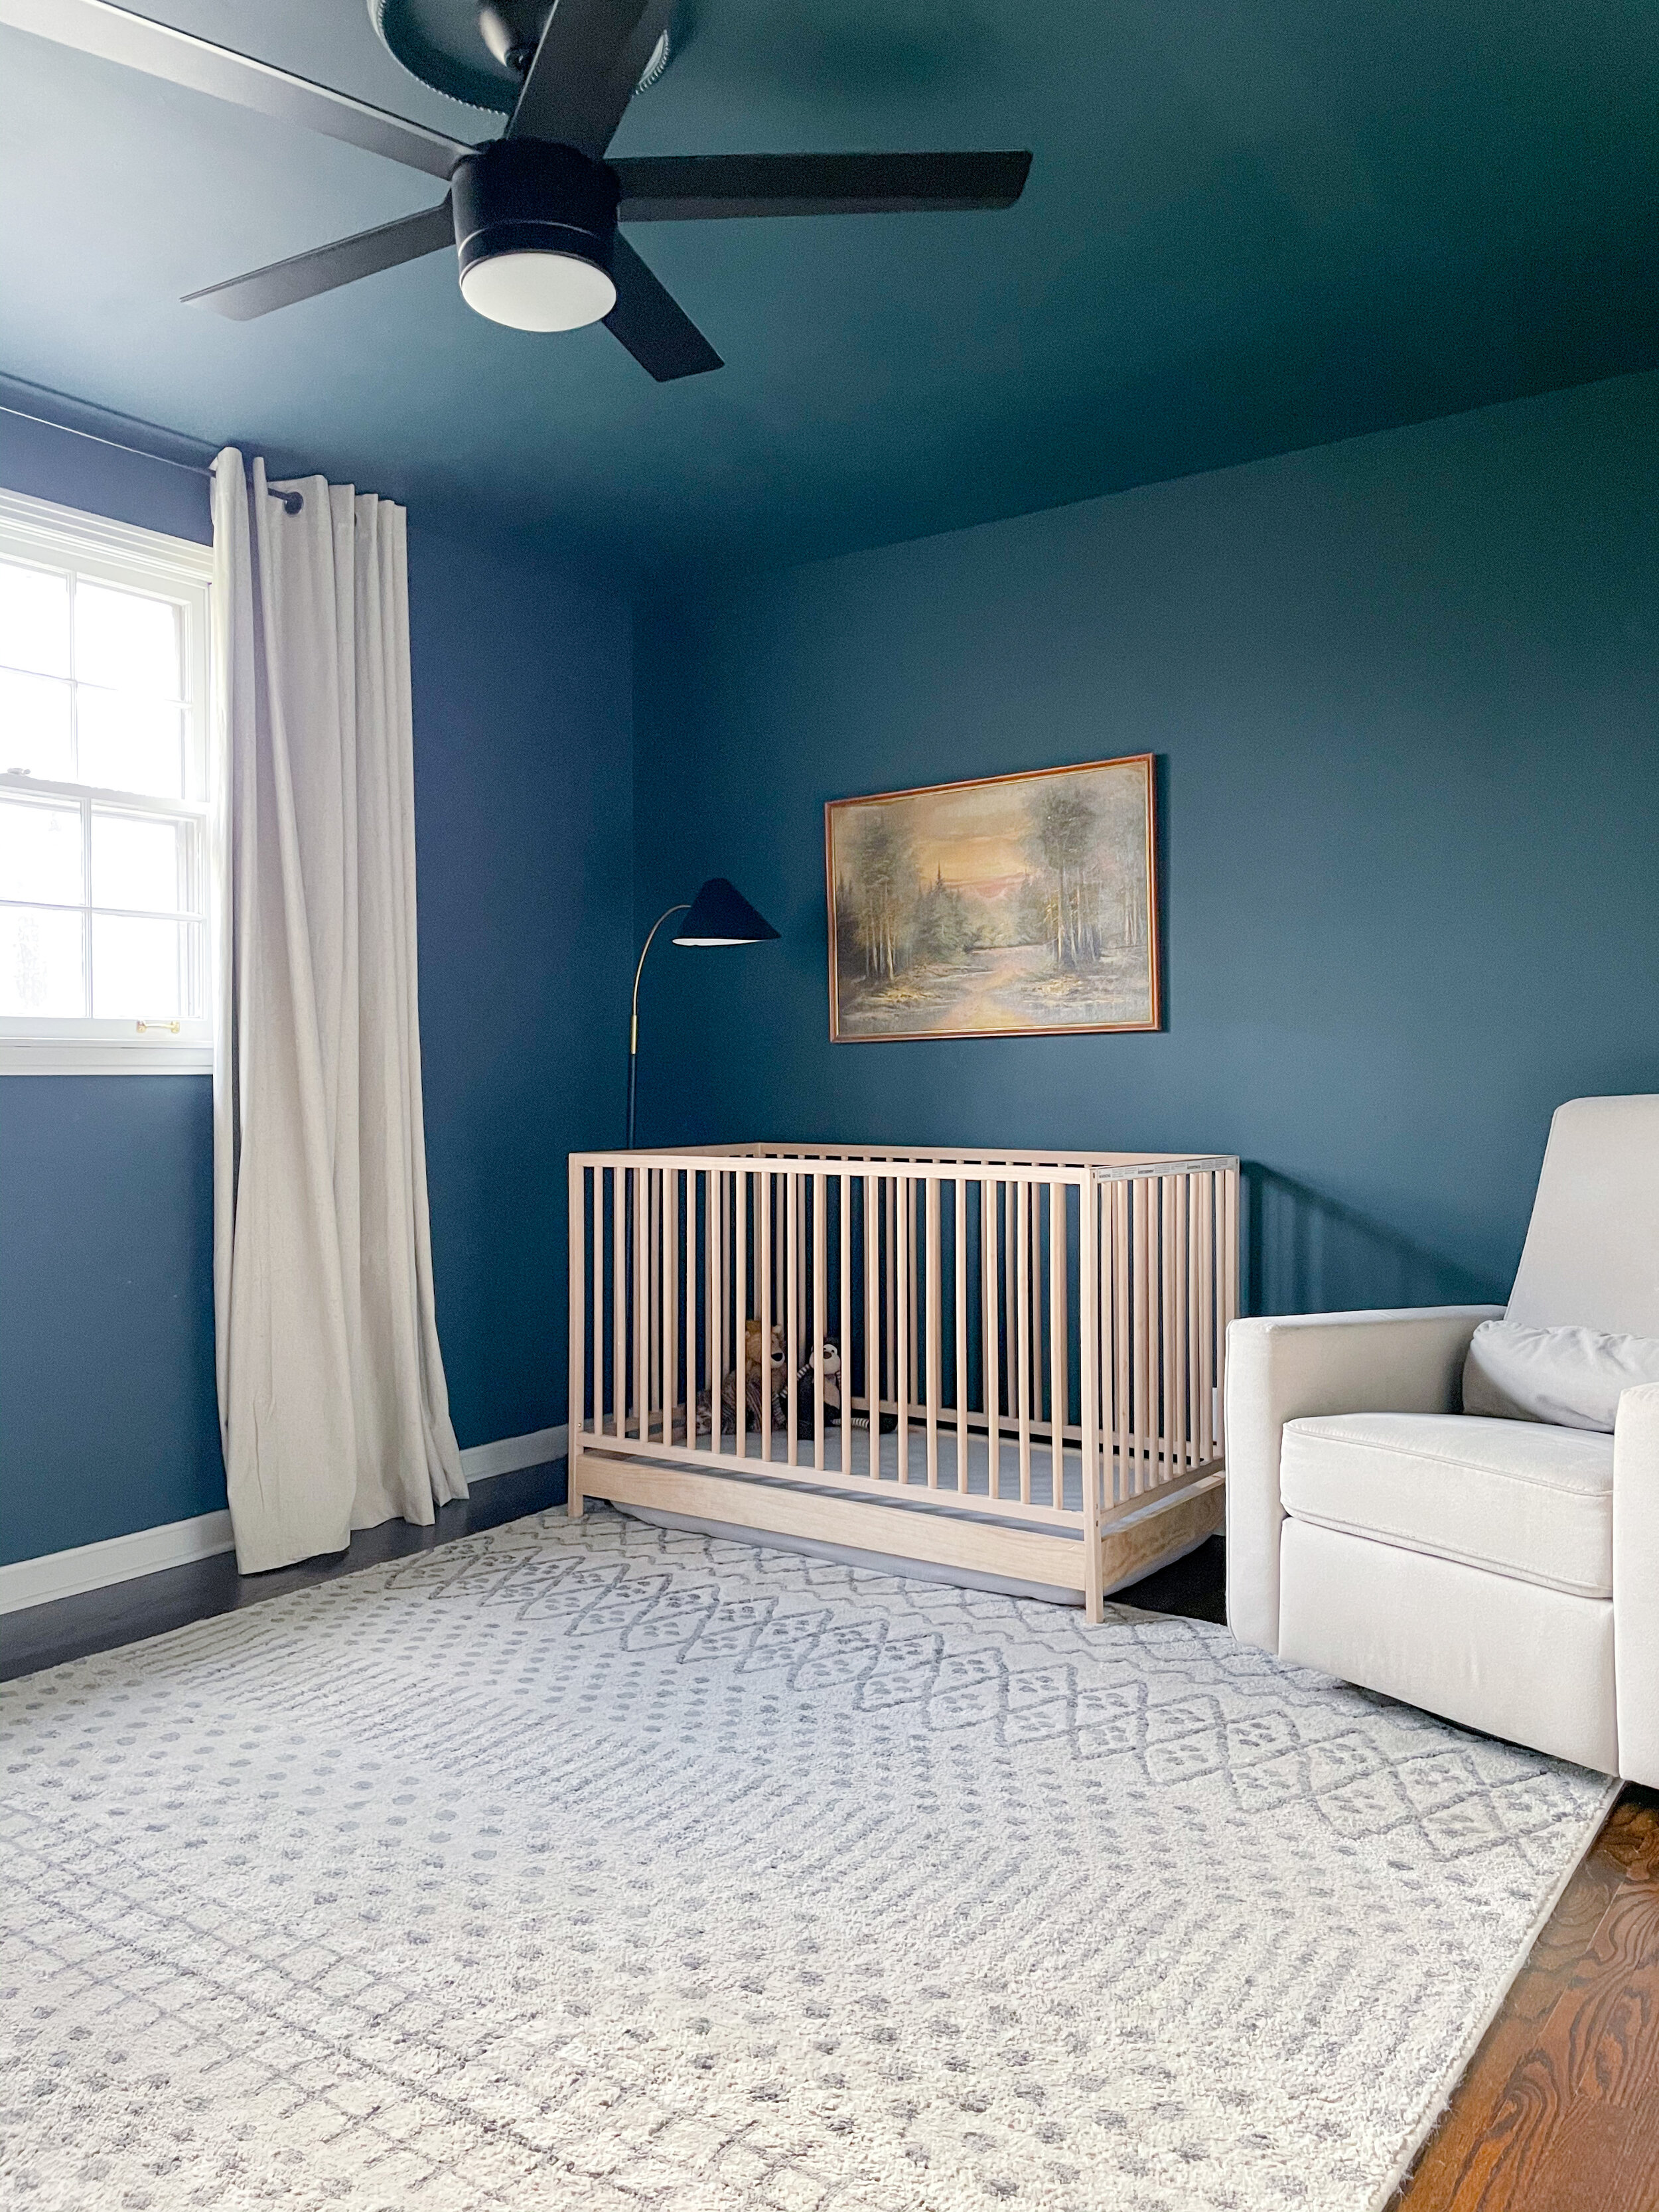 - If you saw our Toddler Room Reveal, you?ve seen this crib before. It?s from Ikea and its a great option if you?re looking for a simple, natural wood crib! I love that we were able to move the mattress all the way to the floor now once Judah started climbing out. It has grown with him so well!